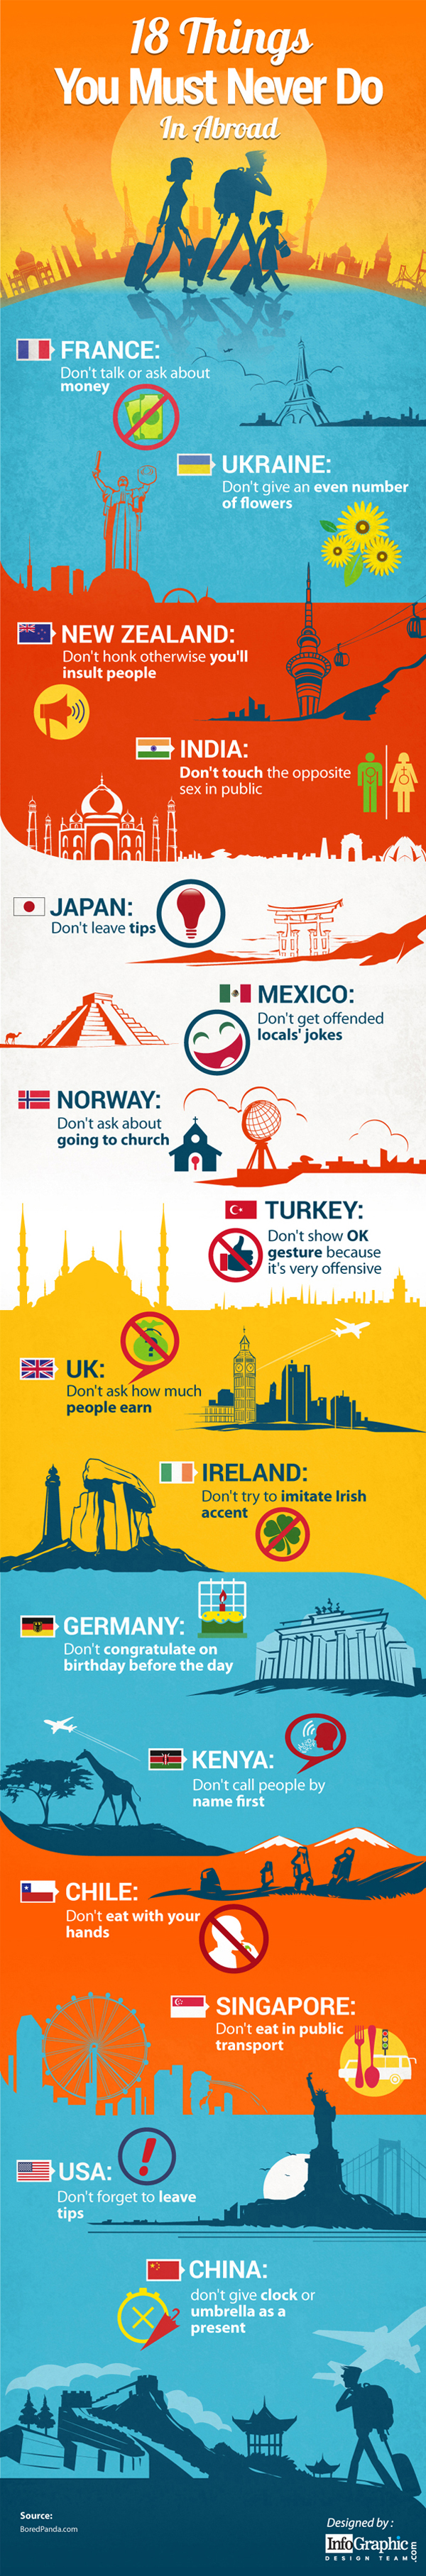 18 Things To Avoid While In Abroad